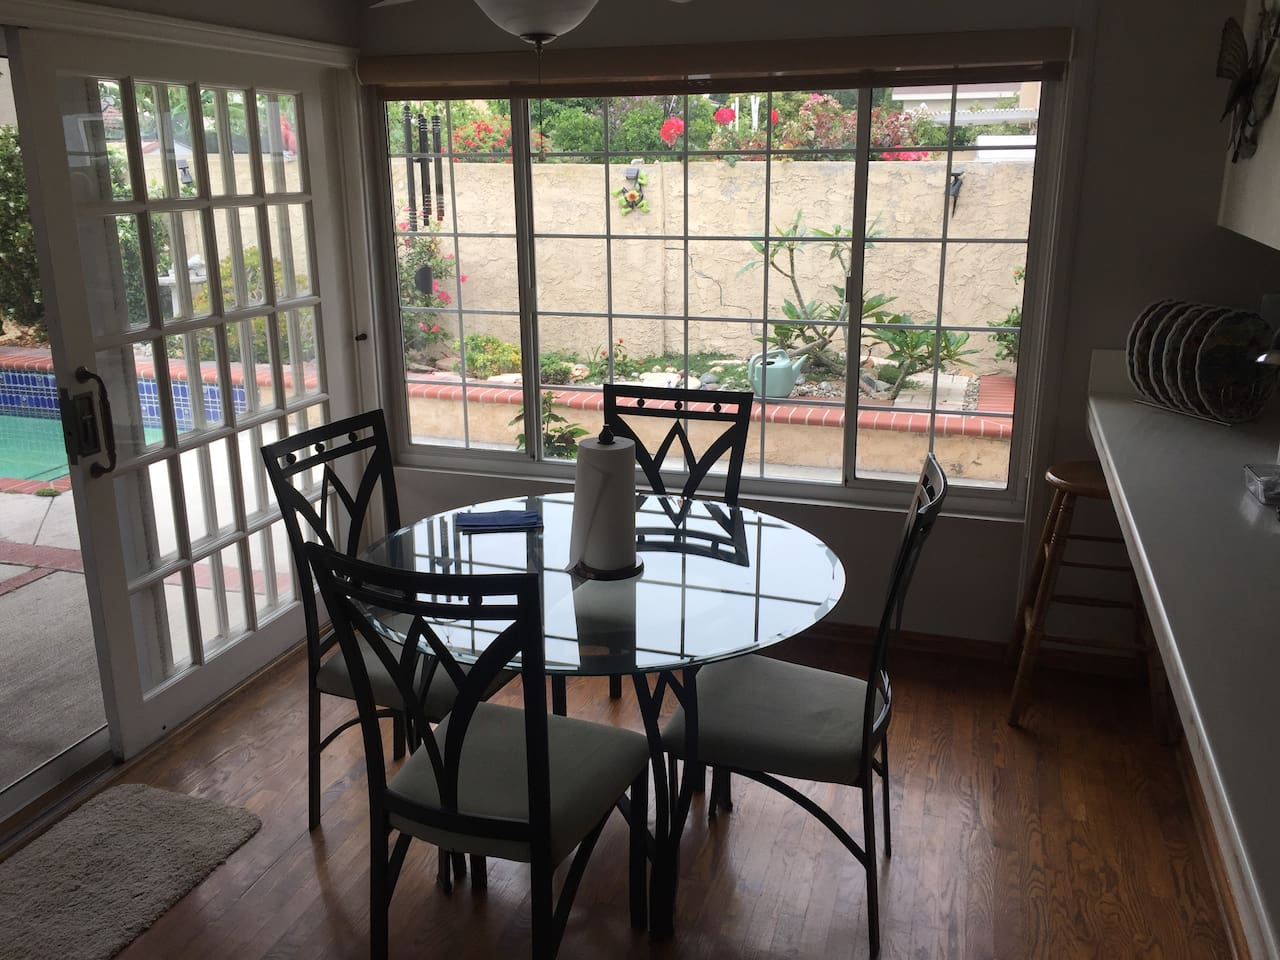 Eating area with view of pool and backyard. Ceiling fan is useful on warm days. Bar stool if you want to sit at the bar to watch someone cook your meal.